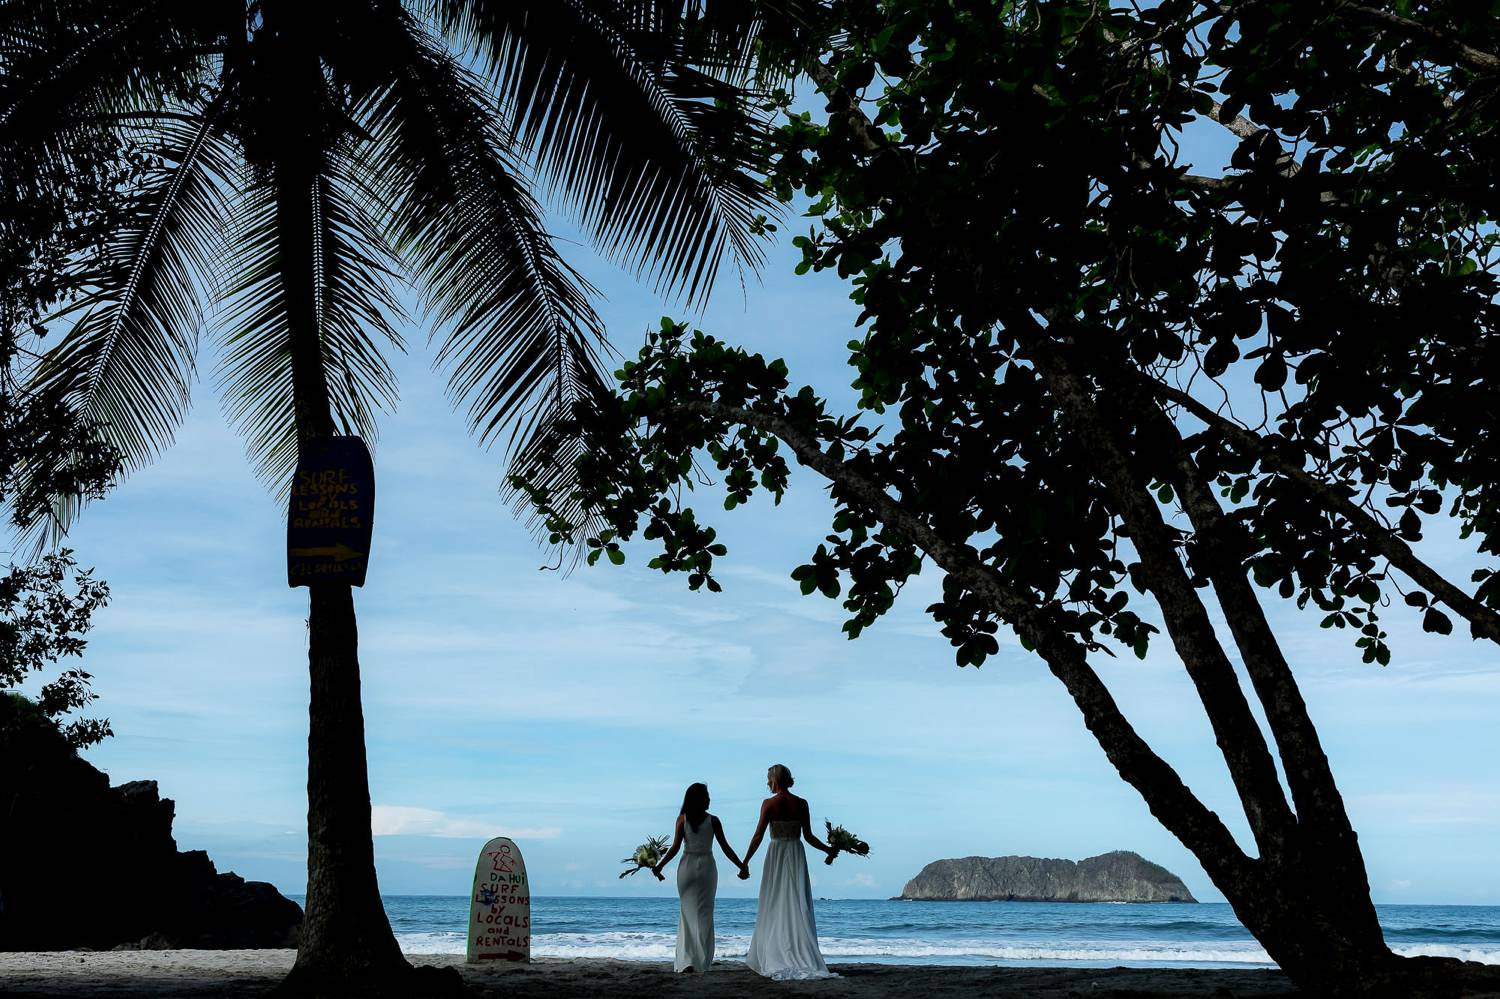 Client Experience: A photograph by Kevin Heslin depicts the sillhouettes of newlywed brides through palm trees as they walk along a beach at sunset.